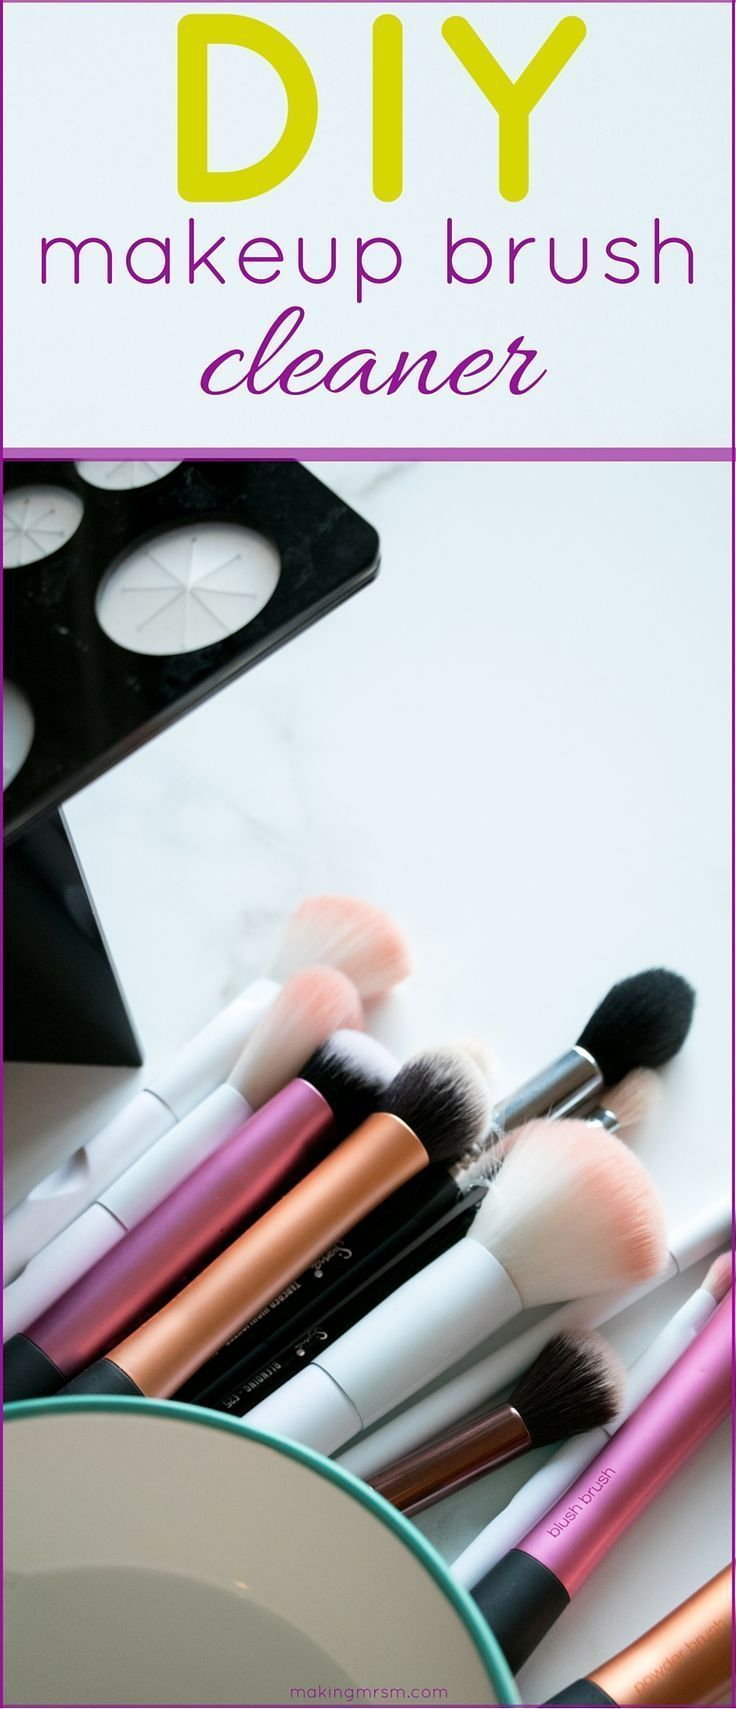 Ew! Do you know what lives in your makeup brushes? I had no idea there were so many reasons why you should clean your makeup brushes. I'm making this DIY makeup brush cleaner tonight!